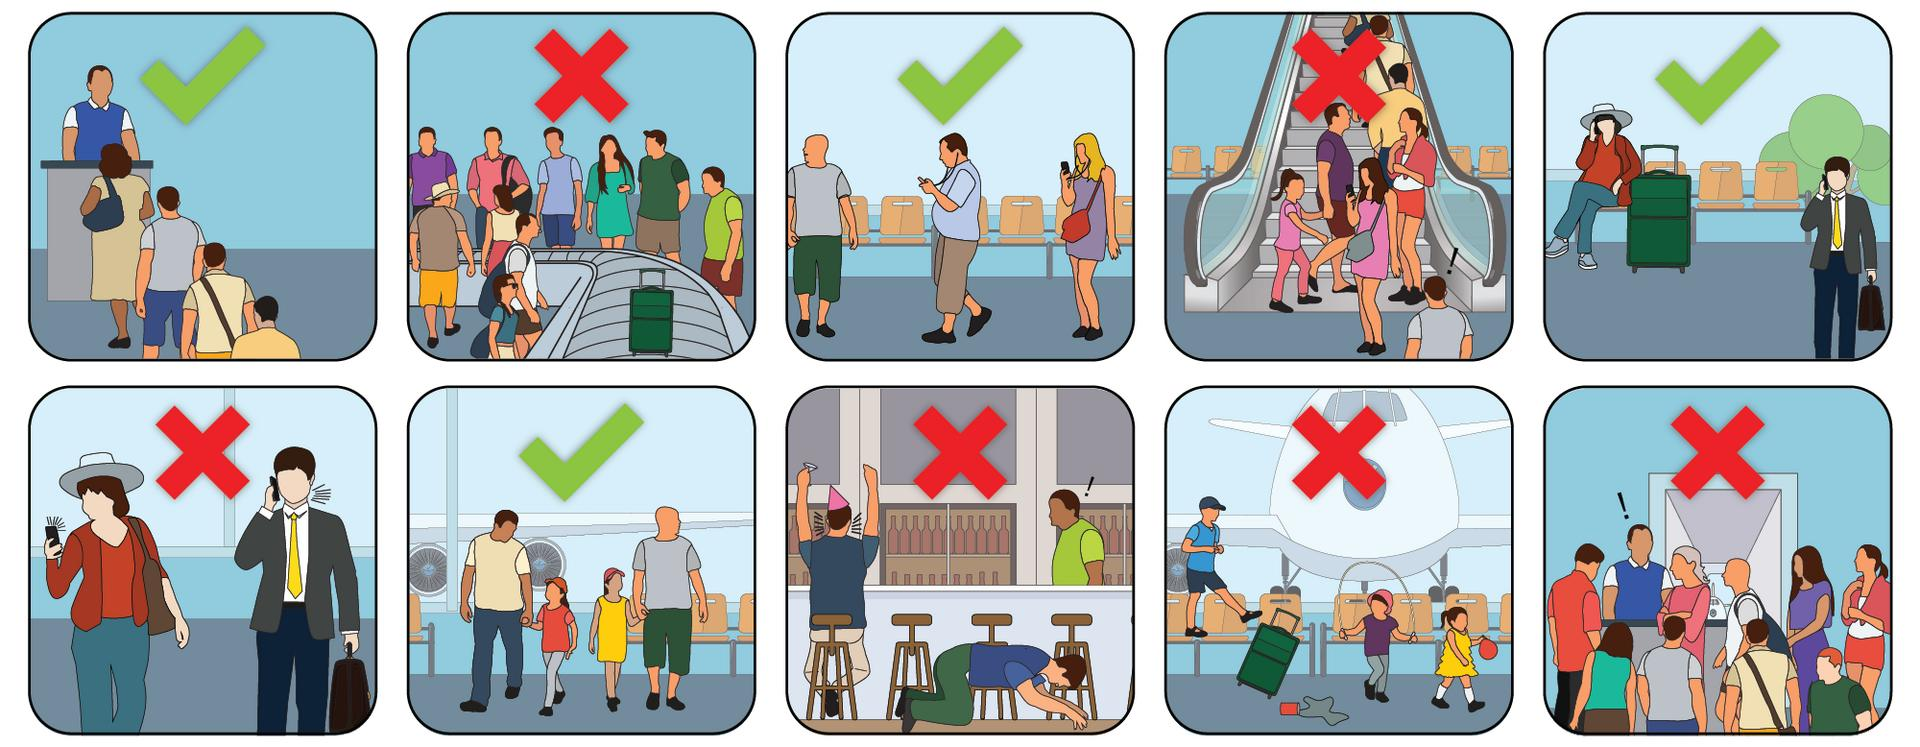 Images in the style of airport safety cards show the dos and don'ts of airport etiquette: people in line to speak with a TSA agent, people talking too loudly on cell phones, people crowding a baggage claim gate, people listening to music on headphones, people falling off chairs at the airport bar, kids making a mess in the waiting area, people blocking an escalator, people crowding the gate.